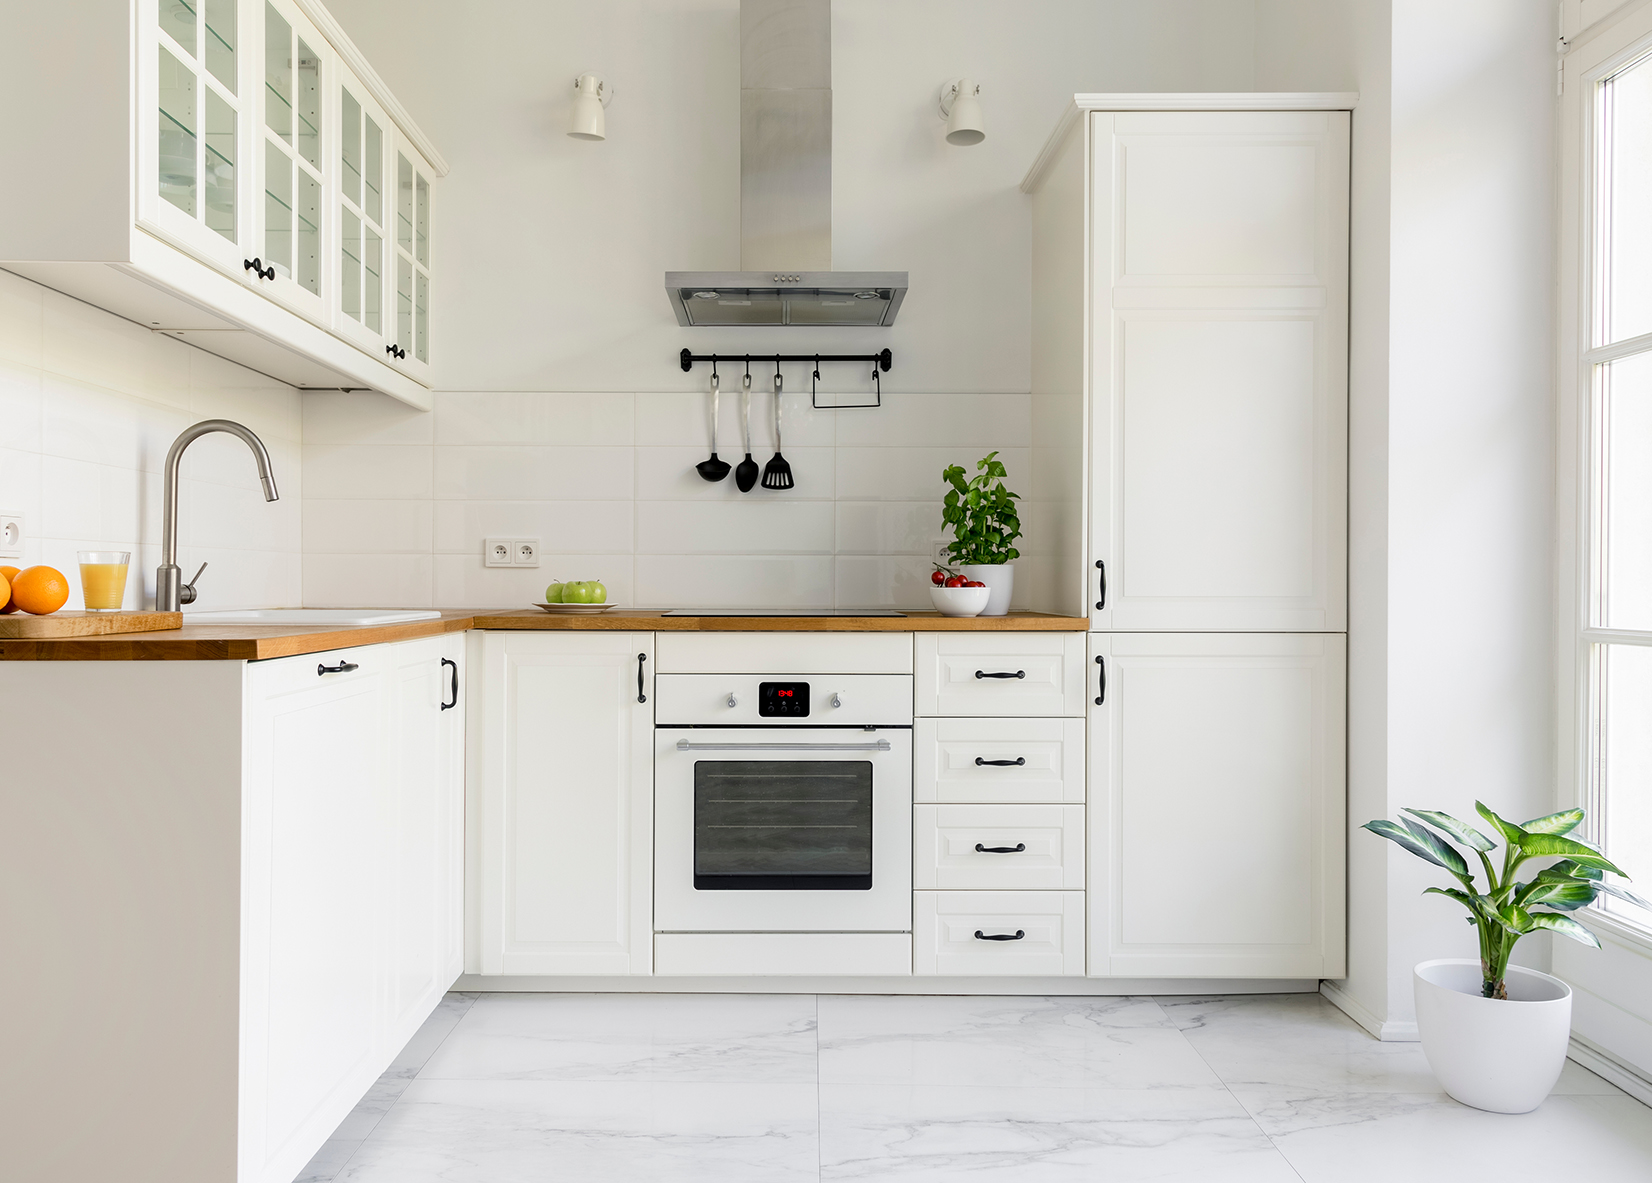 5 Things You Should Not Do To The Stove In Your Kitchen For